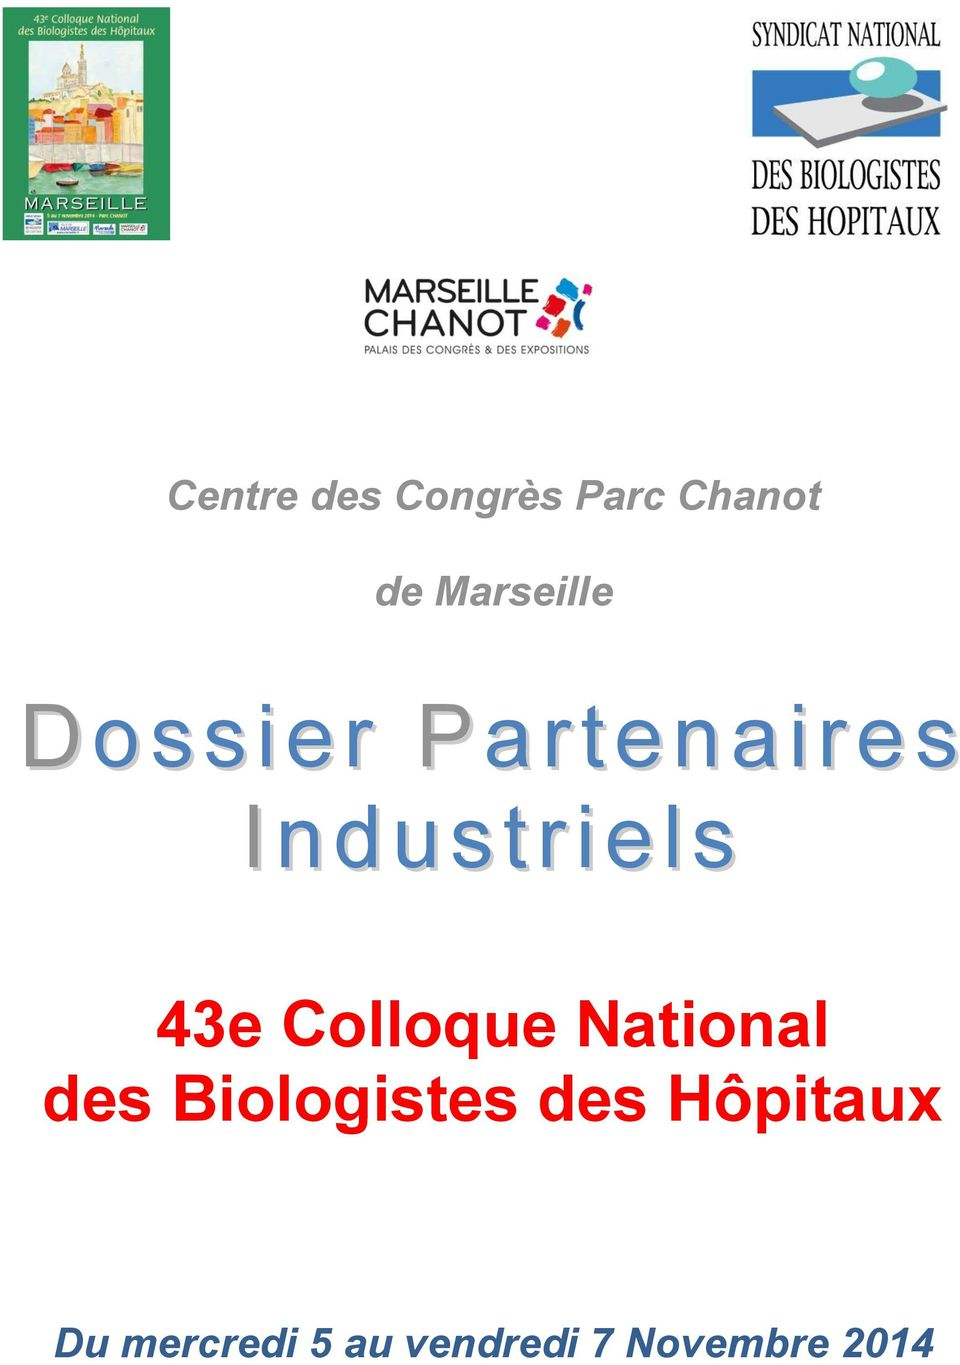 43e Colloque National des Biologistes des